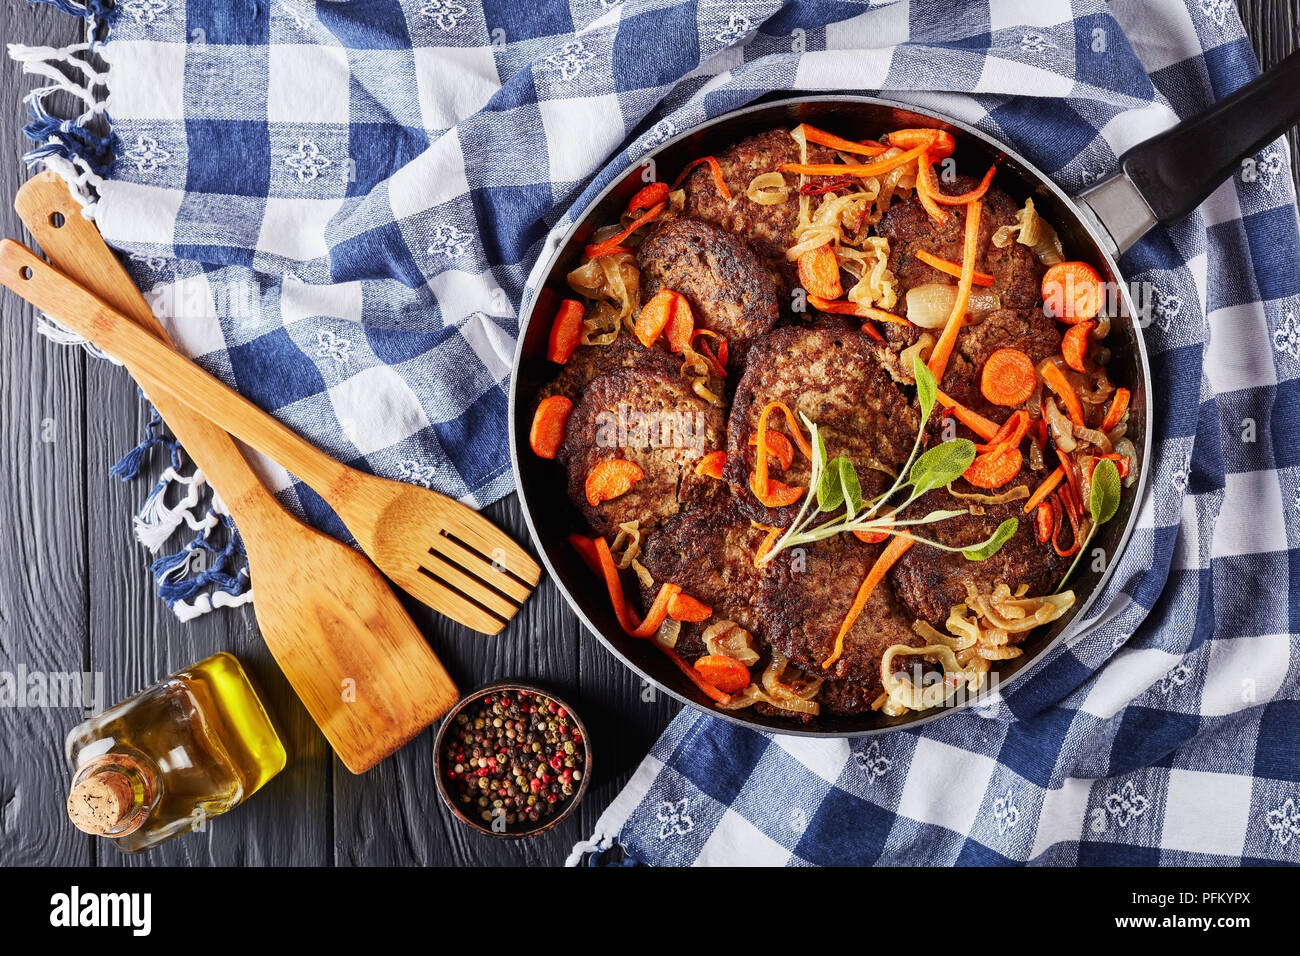 delicious Chicken liver pancakes with carrot, onion, herbs and spices in a skillet with kitchen towel and wooden spatulas on black table, view from ab - Stock Image